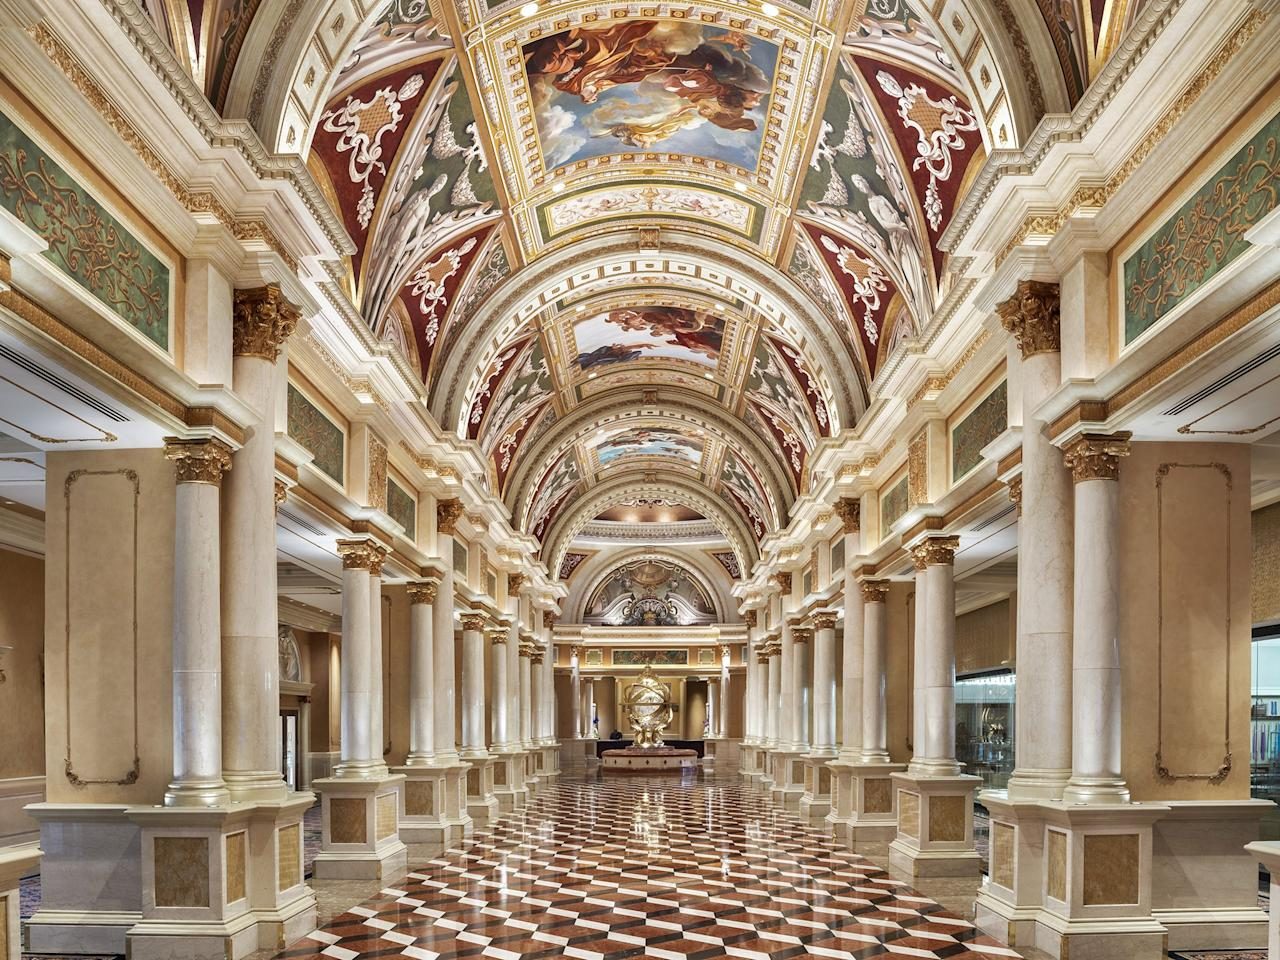 """<p><strong>How did it strike you on arrival?</strong><br> When you walk into The Venetian lobby, it's completely frescoed to its vaulted ceiling, and its centerpiece is a massive gilded sphere held up by four golden women. After having passed a replica of Venice's campanile and Rialto Bridge, arriving in this basilica-style registration area should feel totally cheesy....and yet, it is SO over-the-top and grand, you can't help but be impressed. Yes, even if you have actually been to real Venice. The Venetian and its sister tower, <a href=""""https://www.cntraveler.com/hotels/united-states/las-vegas/the-palazzo?mbid=synd_yahoo_rss"""">The Palazzo</a>, are both a part of The Venetian Resort.</p> <p><strong>What's the crowd like?</strong><br> The Venetian and Palazzo complex is so enormous—more than 7,000 rooms and three million square feet of retail and meeting space, there's absolutely no way to categorize the travelers you see at this hotel. They run the gamut from conventioneers of all kinds to people who know and love the Venetian, to people checking in to the massive Canyon Ranch that spans both hotels.</p> <p><strong>The good stuff: Tell us about your room.</strong><br> The Venetian has made much of how all of its rooms are suites. They are all quite large (the standard size is 650 square feet, and they go up from there). Especially if you are here on business, the step down in each room from sleeping area to a small living room, with desk and big flat screen television, makes a huge psychological difference. All of the suites have been recently refreshed, too, to keep pace with Strip-wide renovations. I've stayed in both a Luxury Suite (the standard, with a king-sized bed) and a Bella Suite (essentially the same layout, slightly larger, with two queens). All done with cream-colored walls and neutral carpets but with jewel-toned accent chairs, they're more modern and definitely lighter than they were a few years ago.</p> <p><strong>We're craving some deep, restorative"""